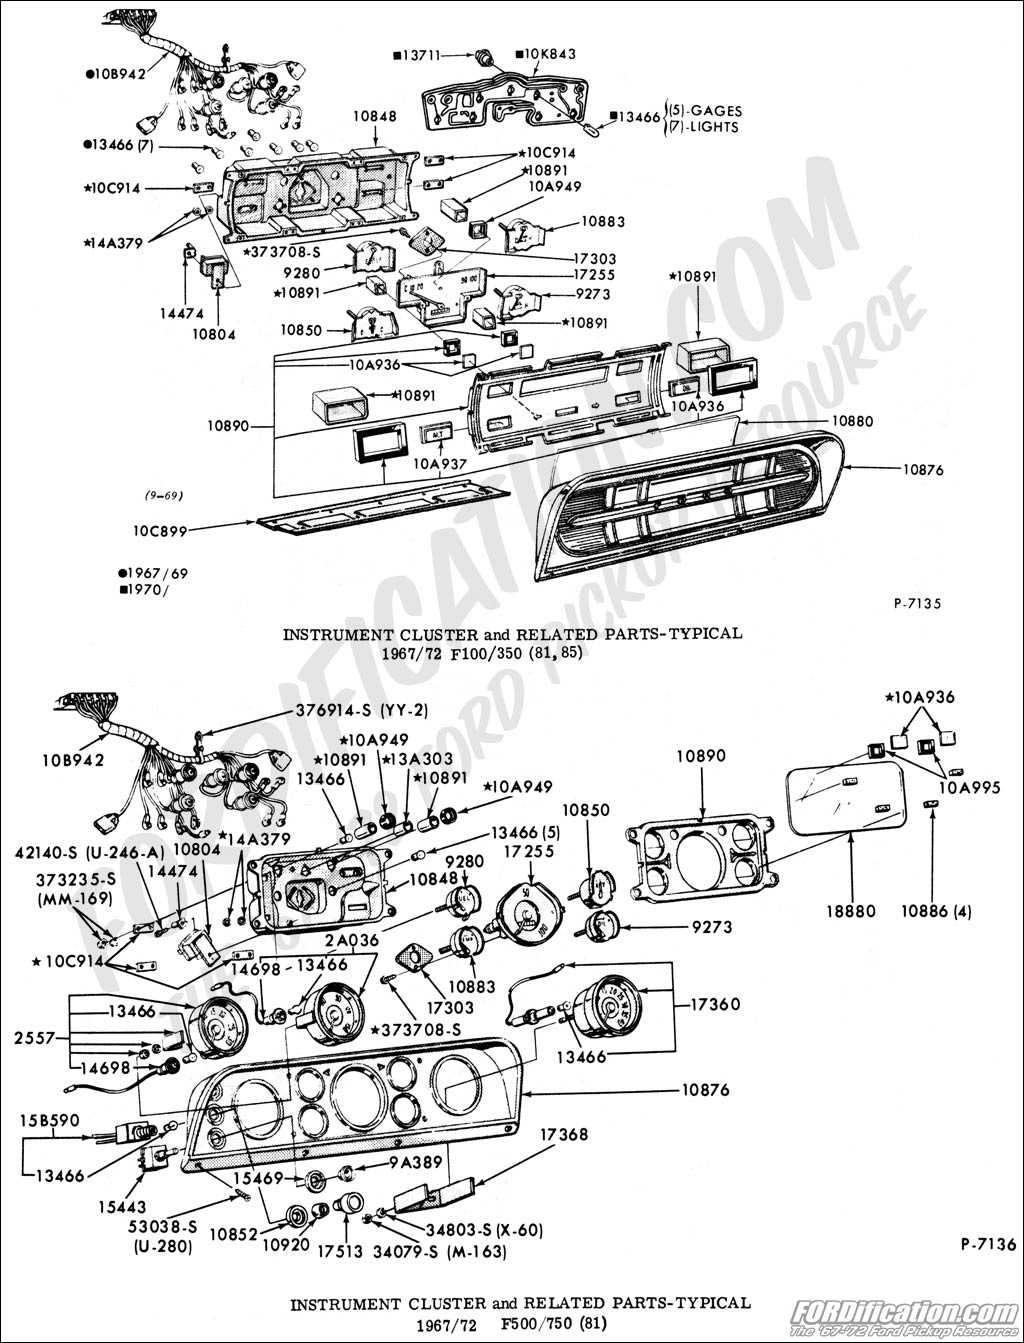 Ford Truck Part Numbers (Instrument Panel & Related